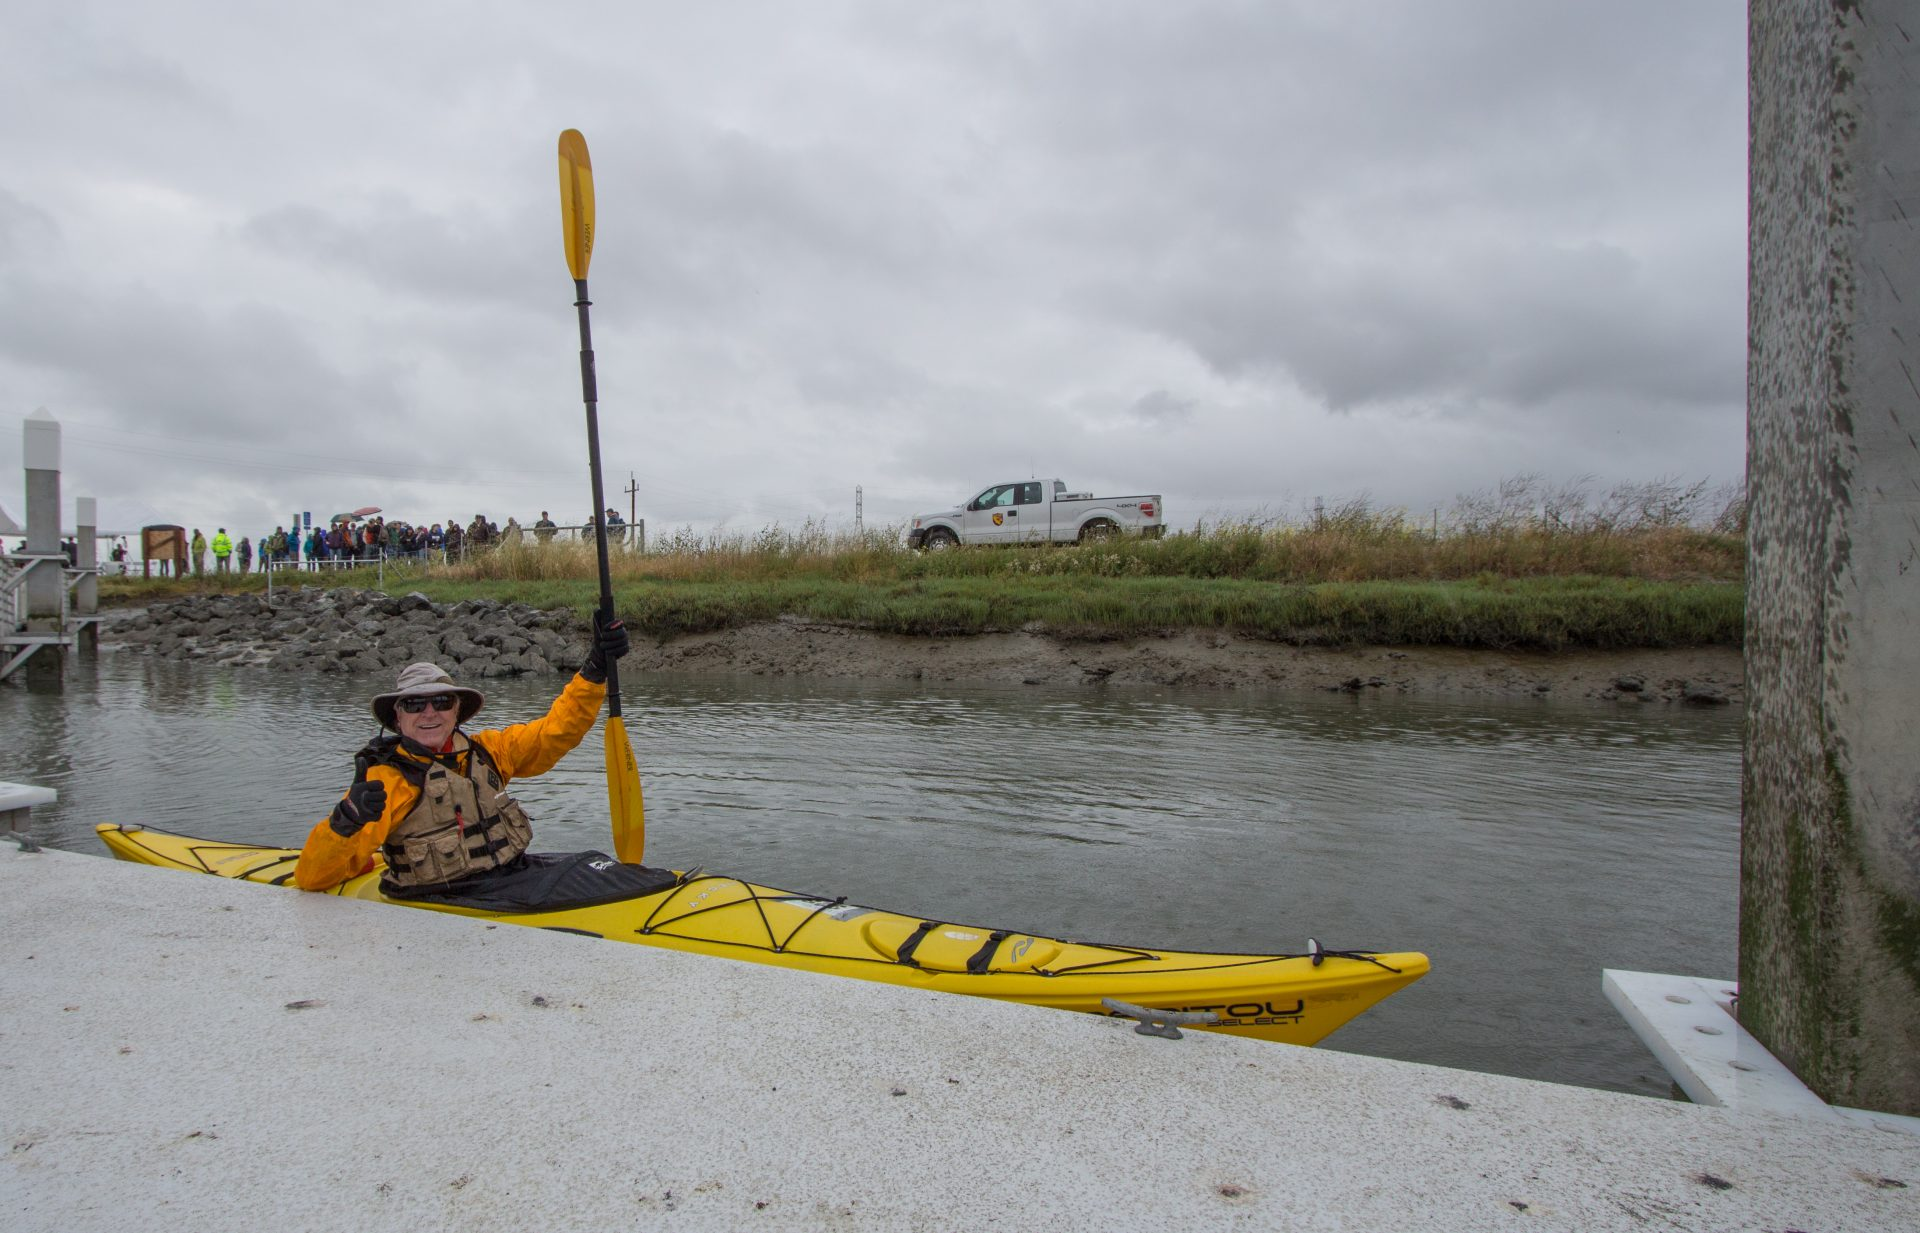 Person in yellow kayak in water alongside dock, waving and holding up paddle